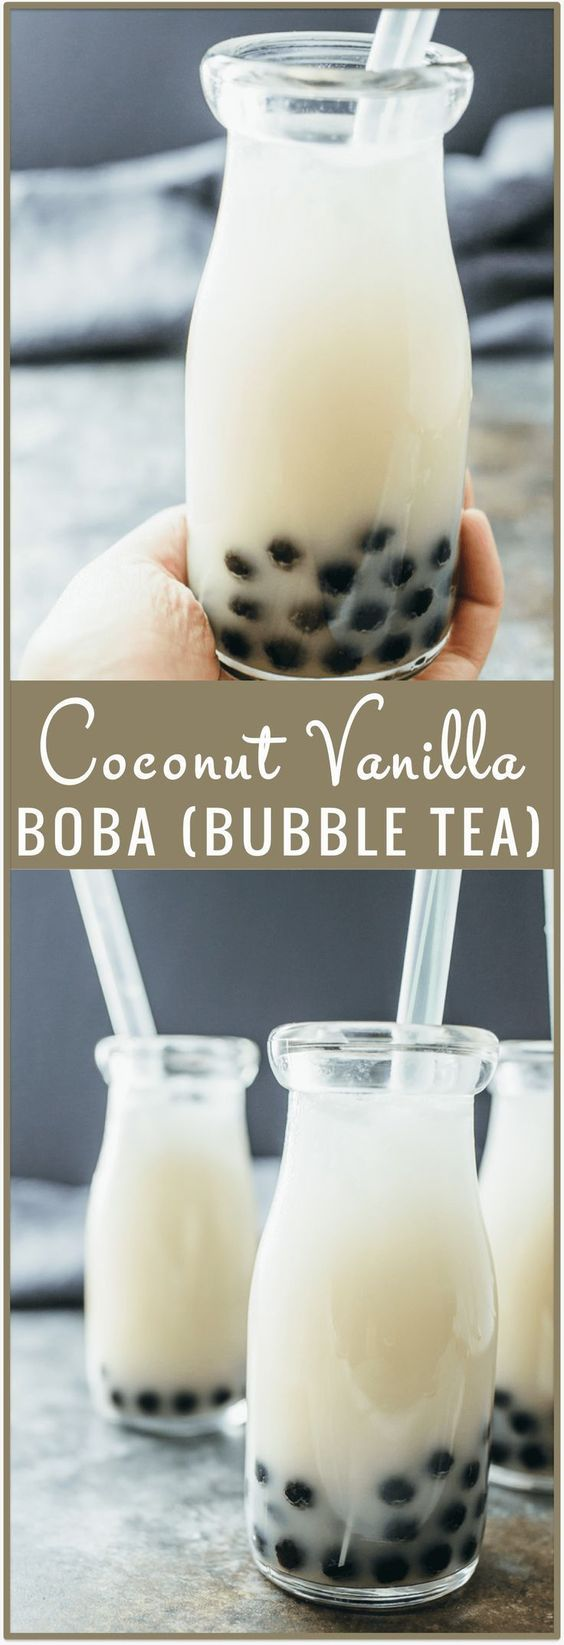 Coconut vanilla boba (bubble tea) - Ever wonder how to make boba (bubble tea) at home? This recipe shows you how to make boba with coconut and vanilla flavors using home-cooked tapioca pearls! You don't need many supplies/ingredients to end up with t